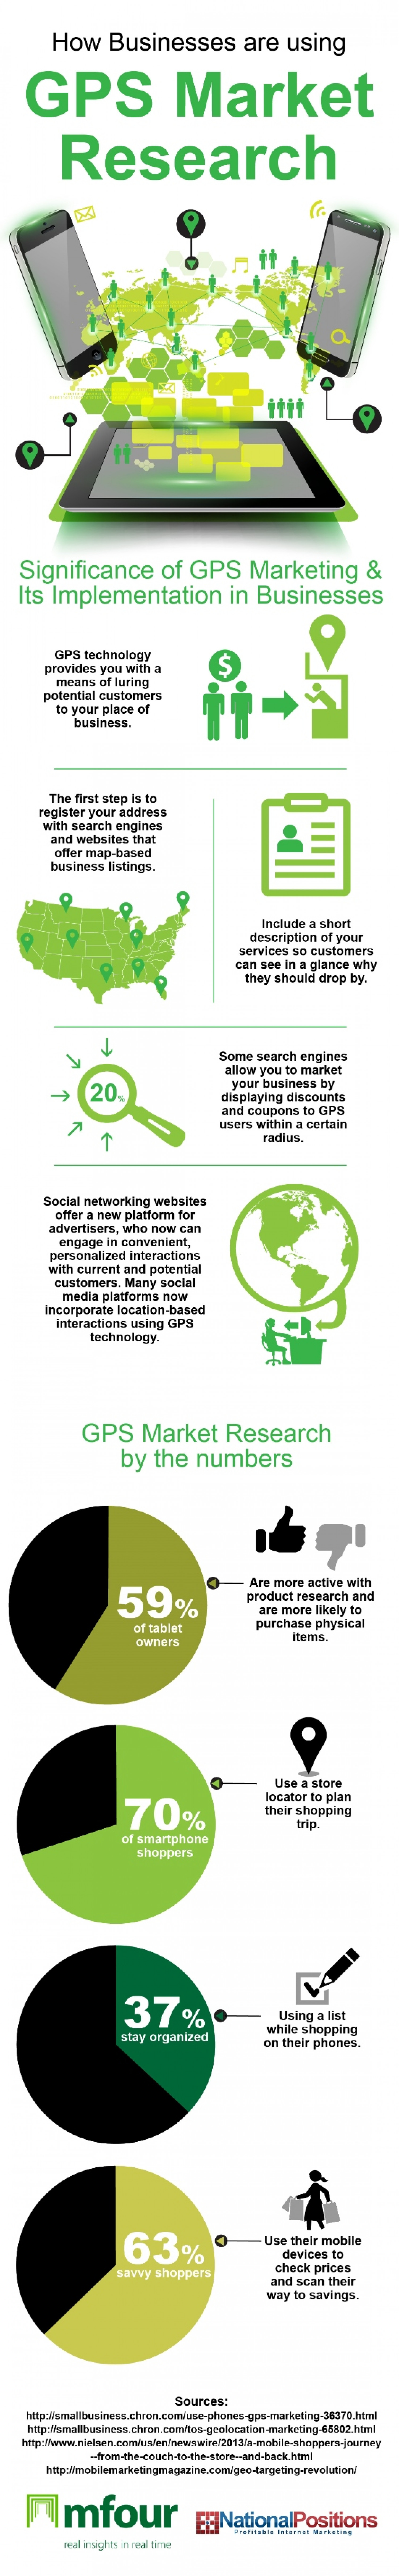 How Businesses Are Using GPS Market Research Infographic